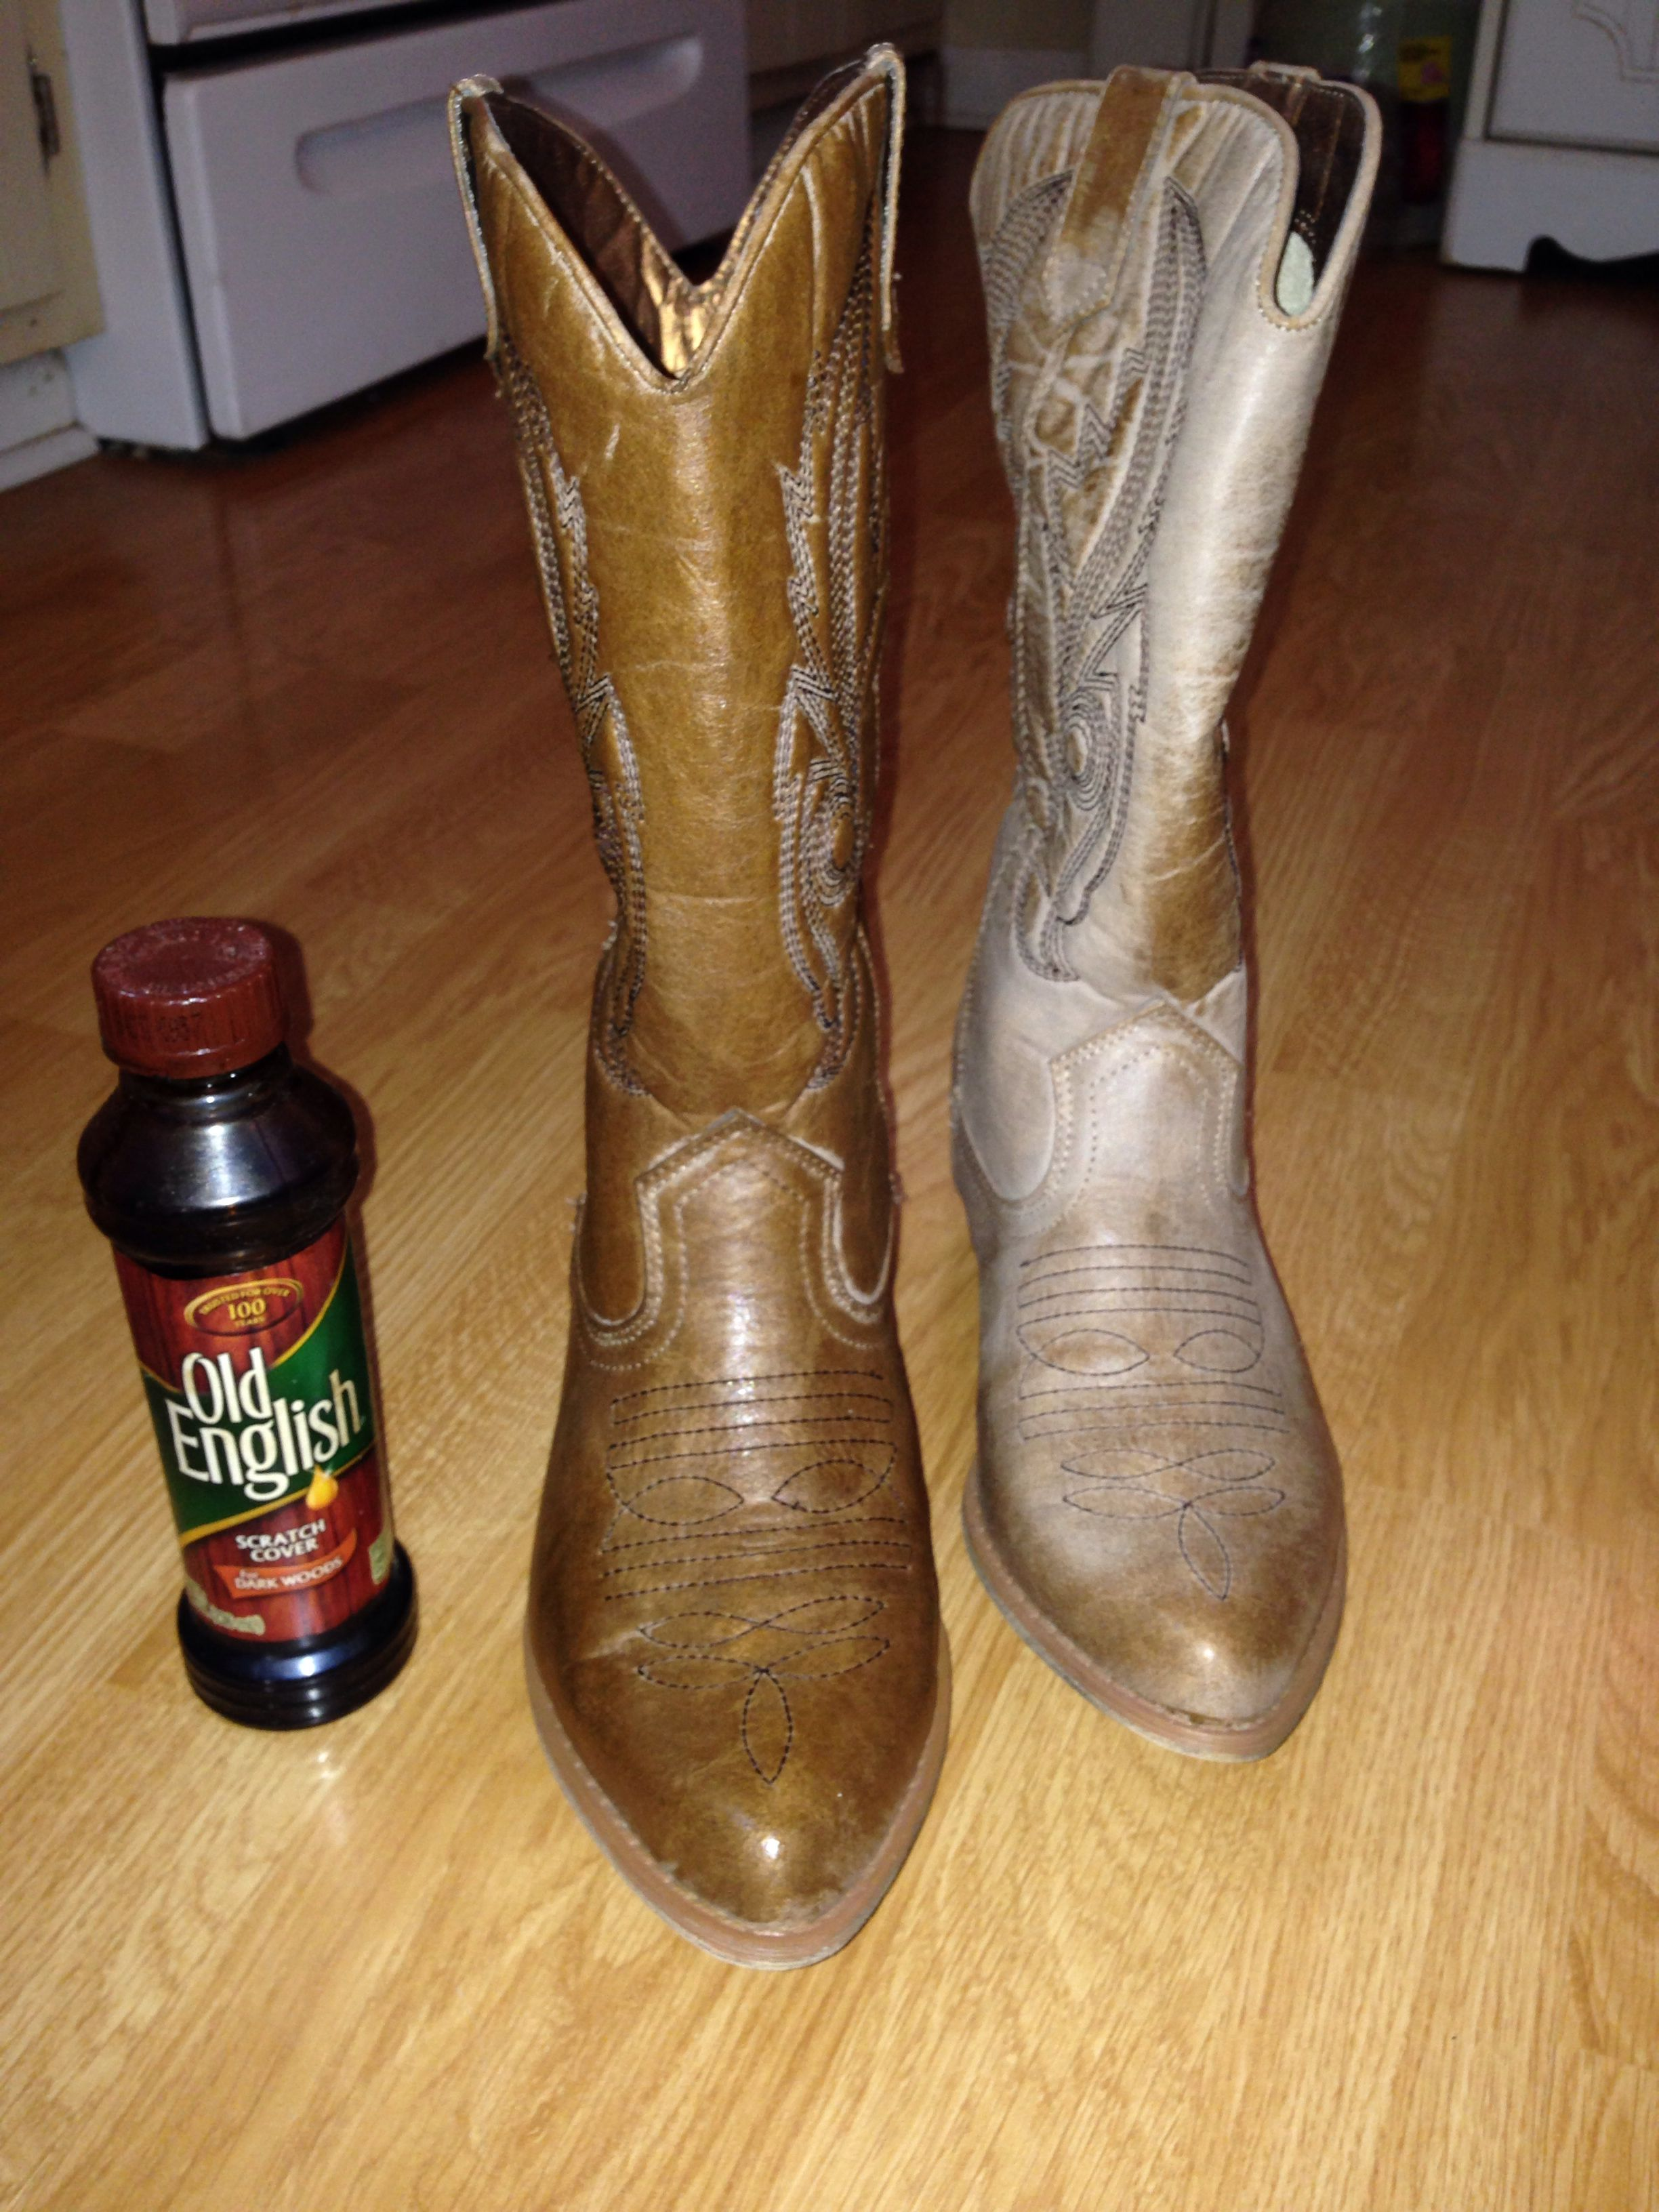 Revive Boots With Old English Furniture Polish It Moisturizes And Res Color To Even Faux Leather Cowboy Like This Pair